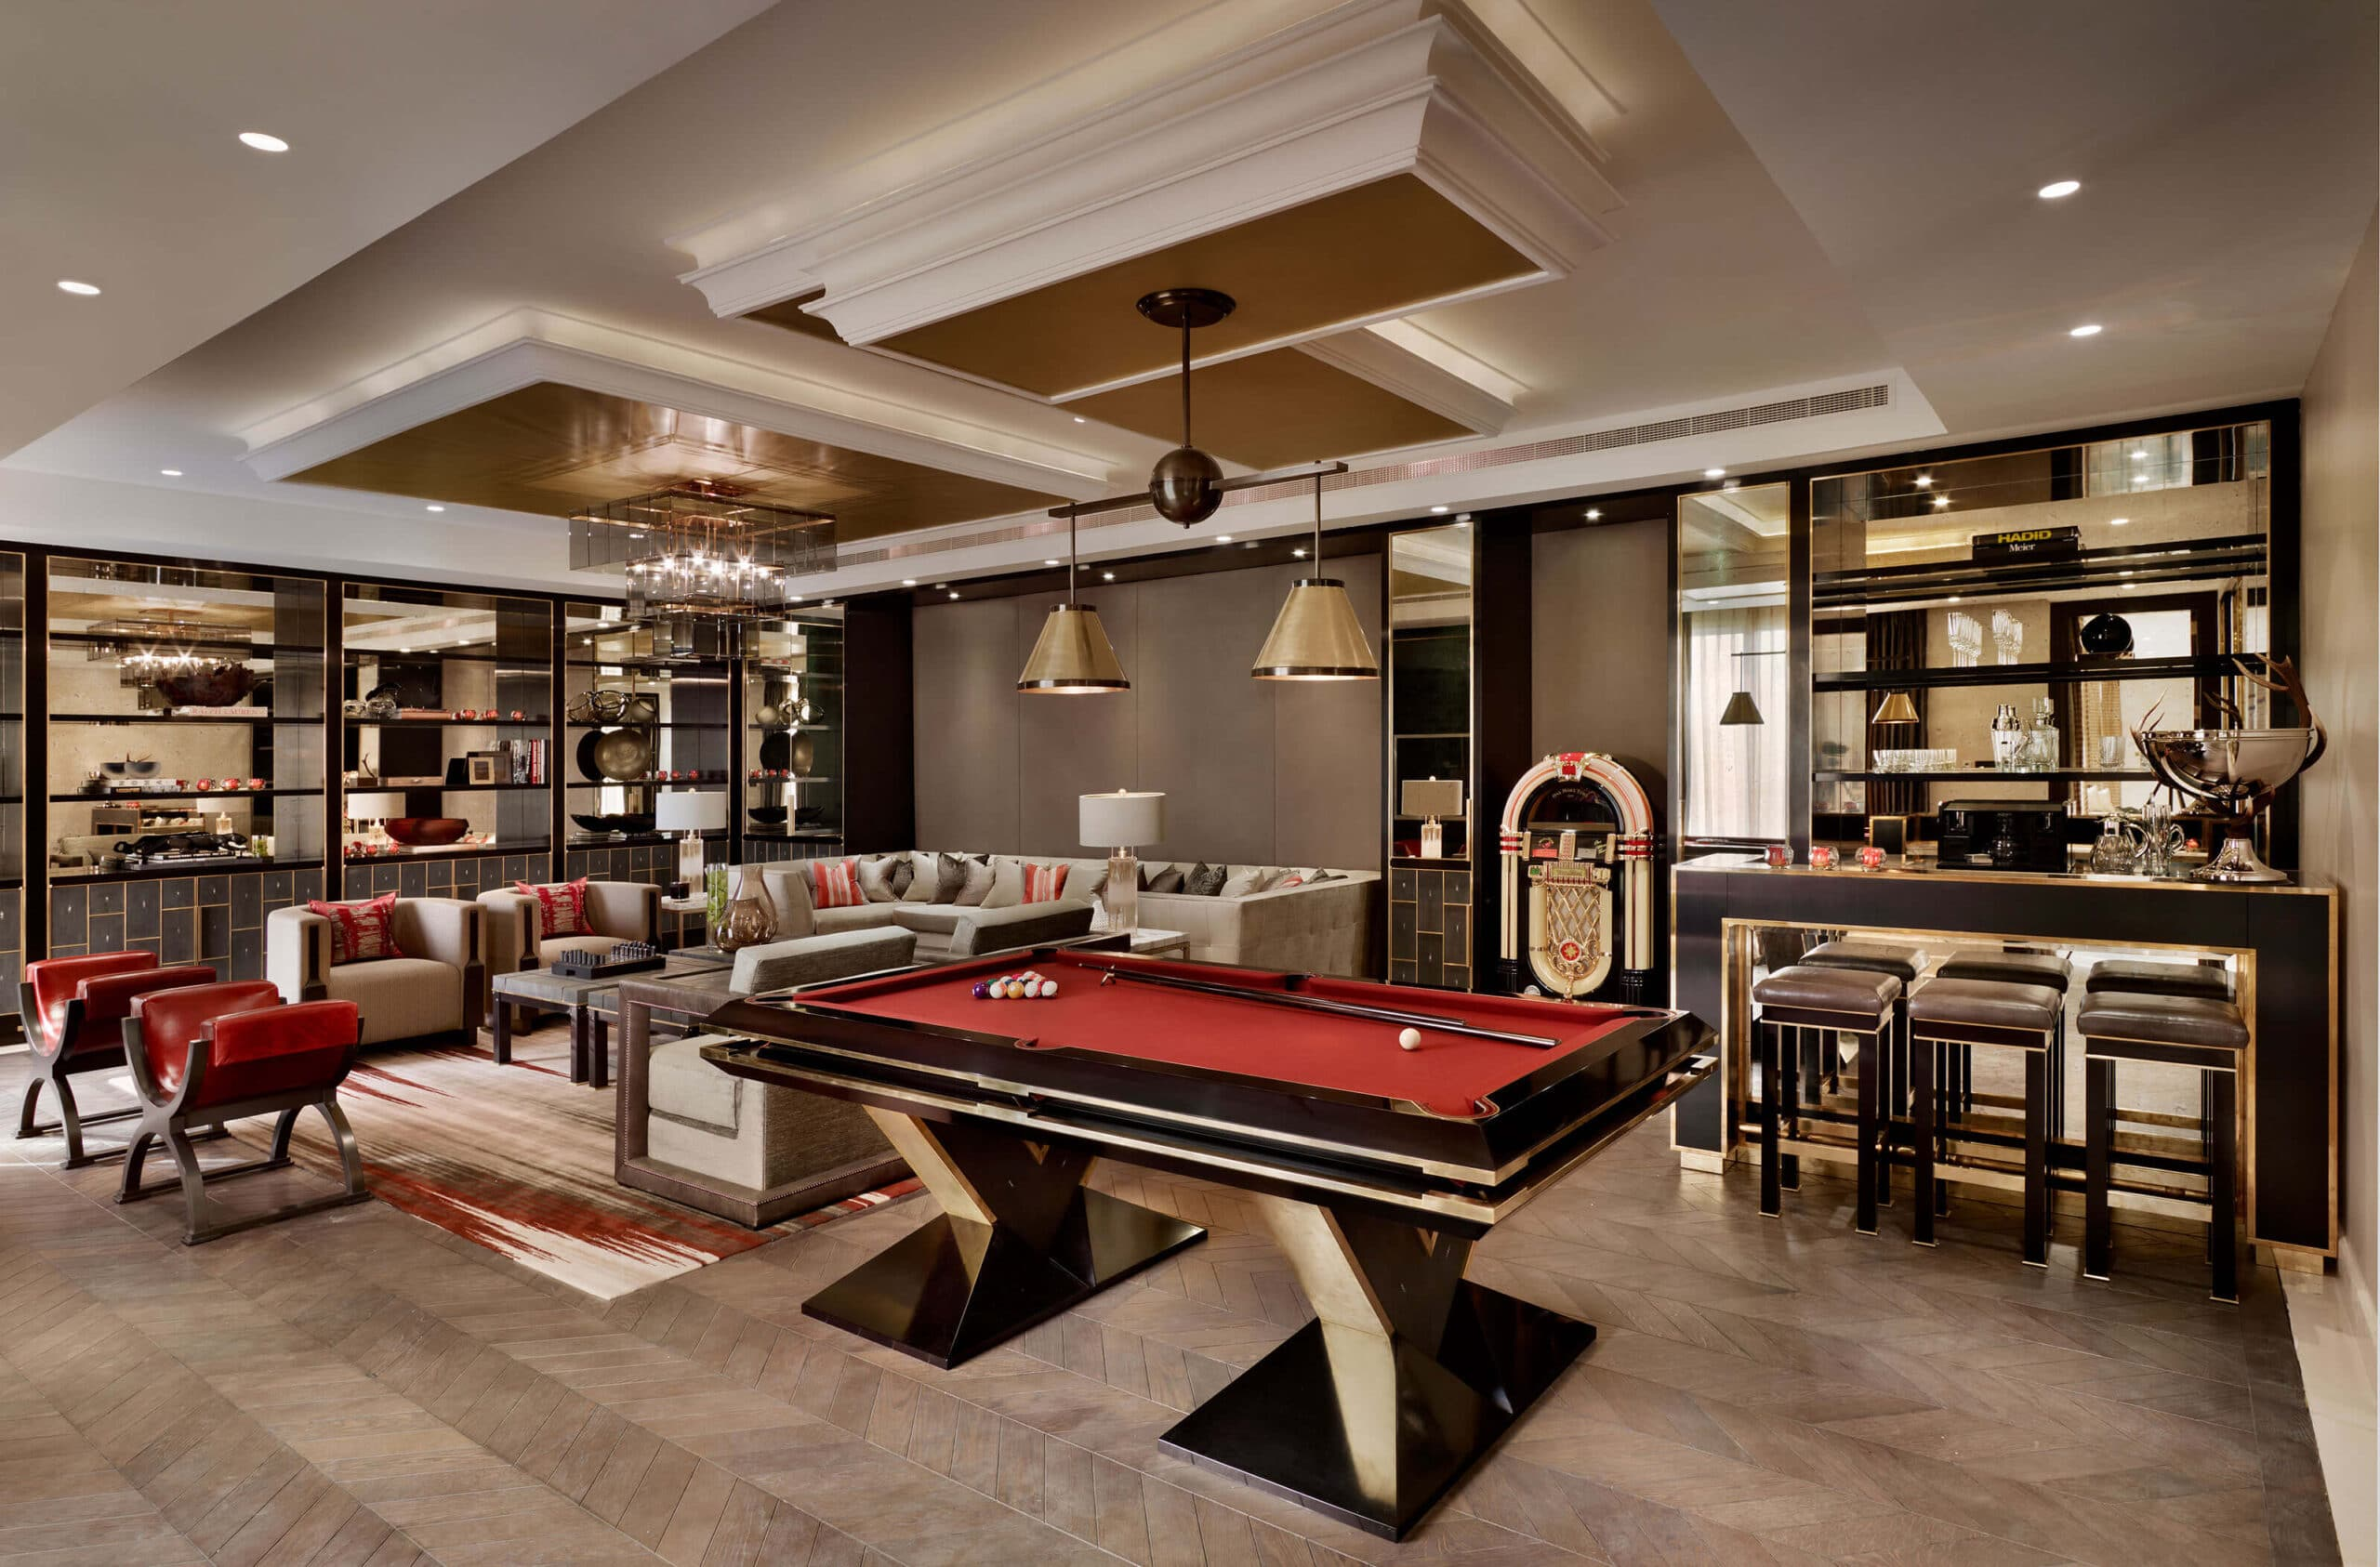 Luxury games room in Qatar project by Katharine Pooley